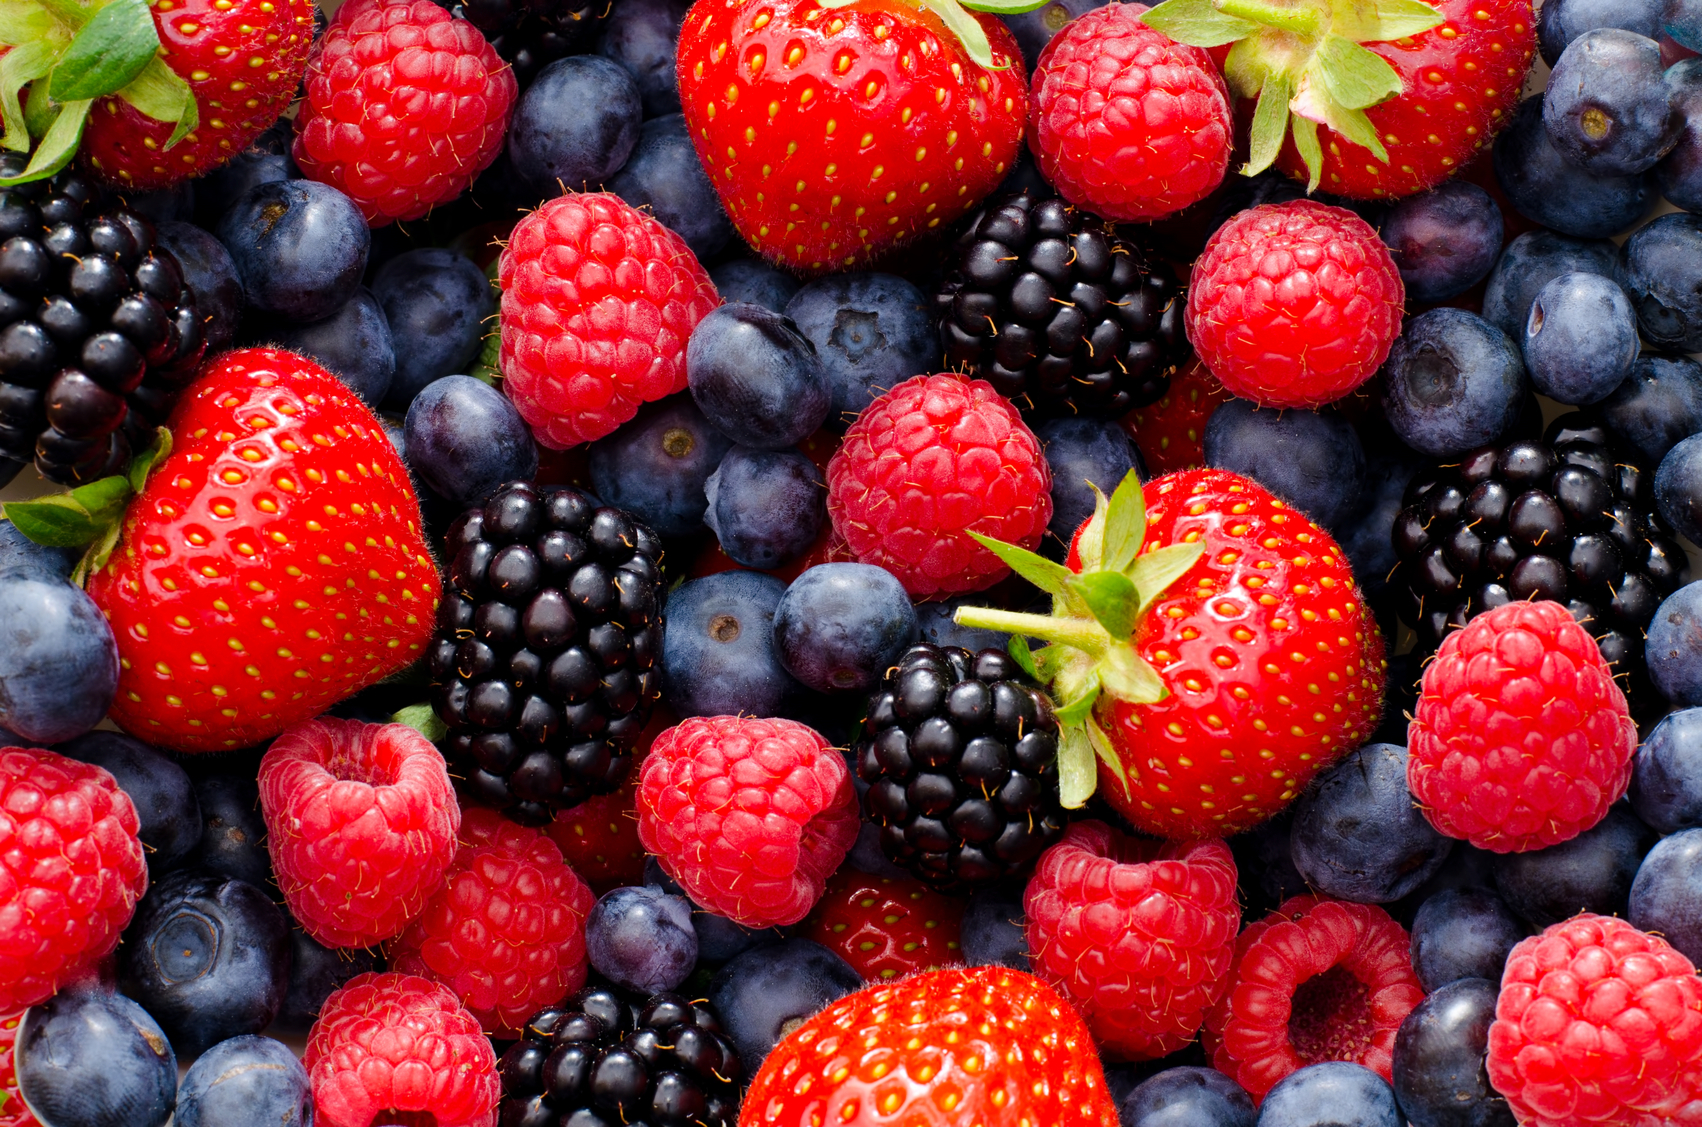 Soft fruit can have a range of beneficial effects on food digestion